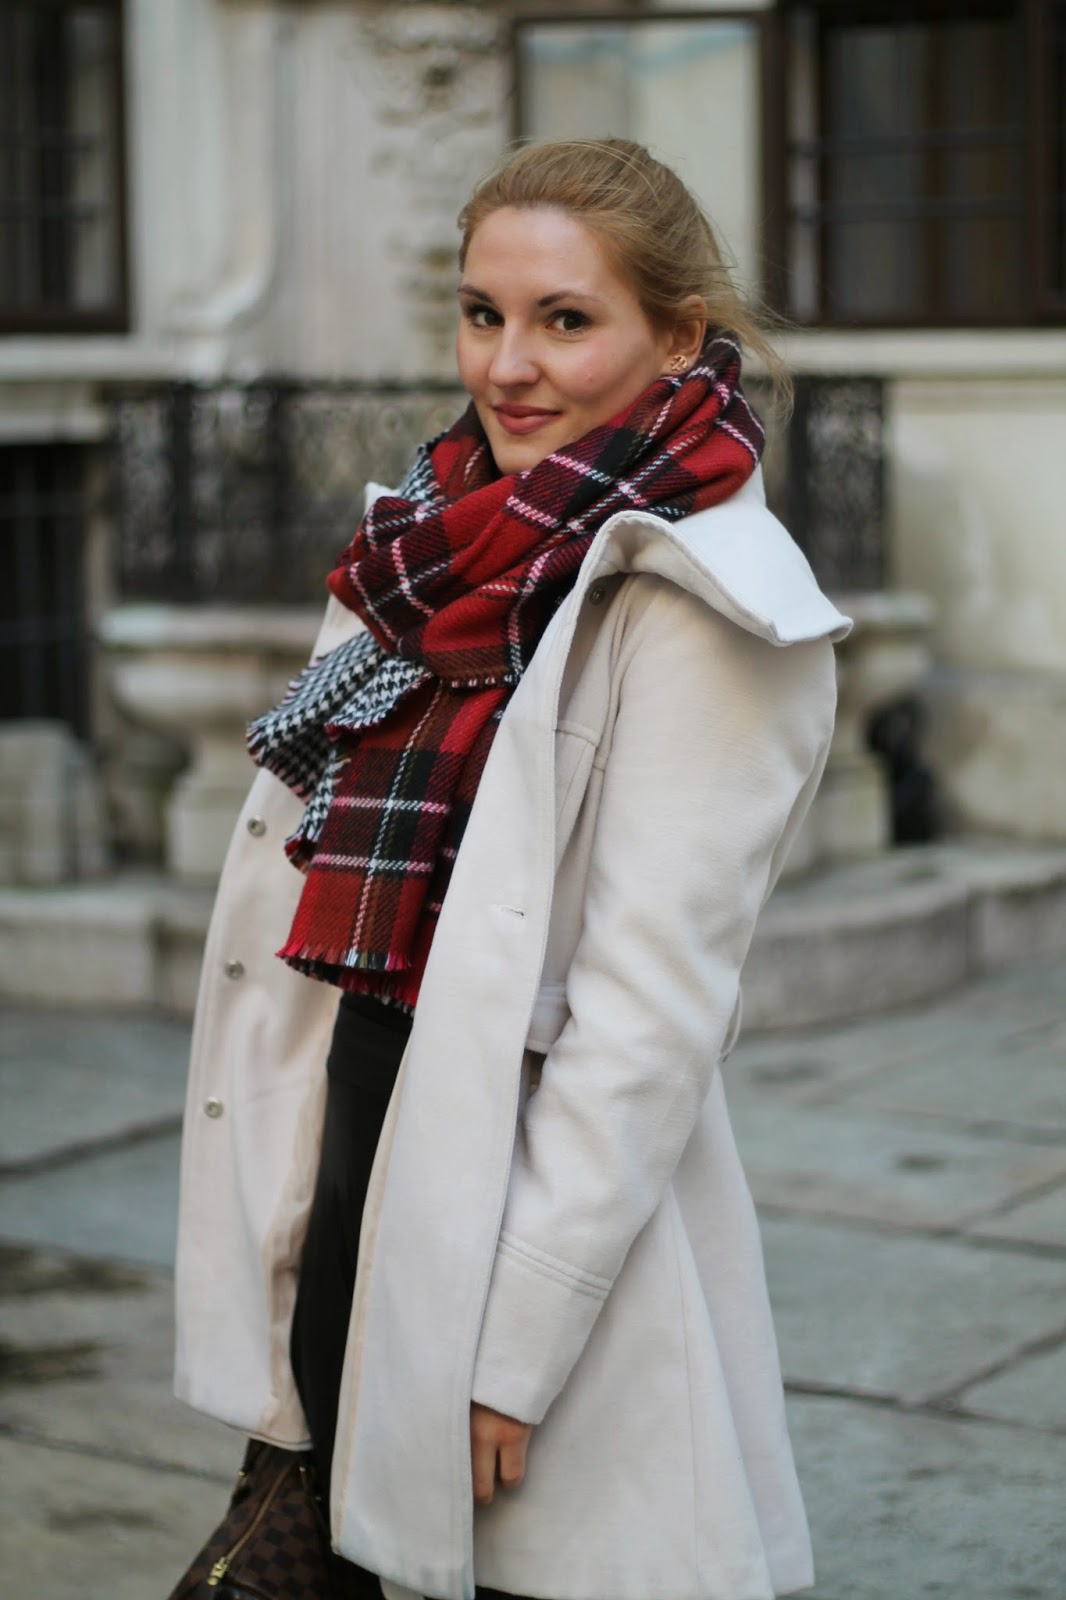 Fashionblogger Austria / Österreich / Deutsch / German / Kärnten / Carinthia / Klagenfurt / Köttmannsdorf / Winter Look / Classy / Edgy / Winter / WInter Style 2014 / Winter Look / Fashionista Look / Streetstyle Klagenfurt Vienna Wien Austria / /Winter Outfit / Primark Beige Coat Mantel Weiß / Zara Scarf Wendeschal Karo Hahnetritt/ Louis Vuitton Speedy Damier Ebene 35 / Chelsea Boots Black Schwarz Primark / Lederrock Leather Skirt Black Schwarz C&A Clockhouse /